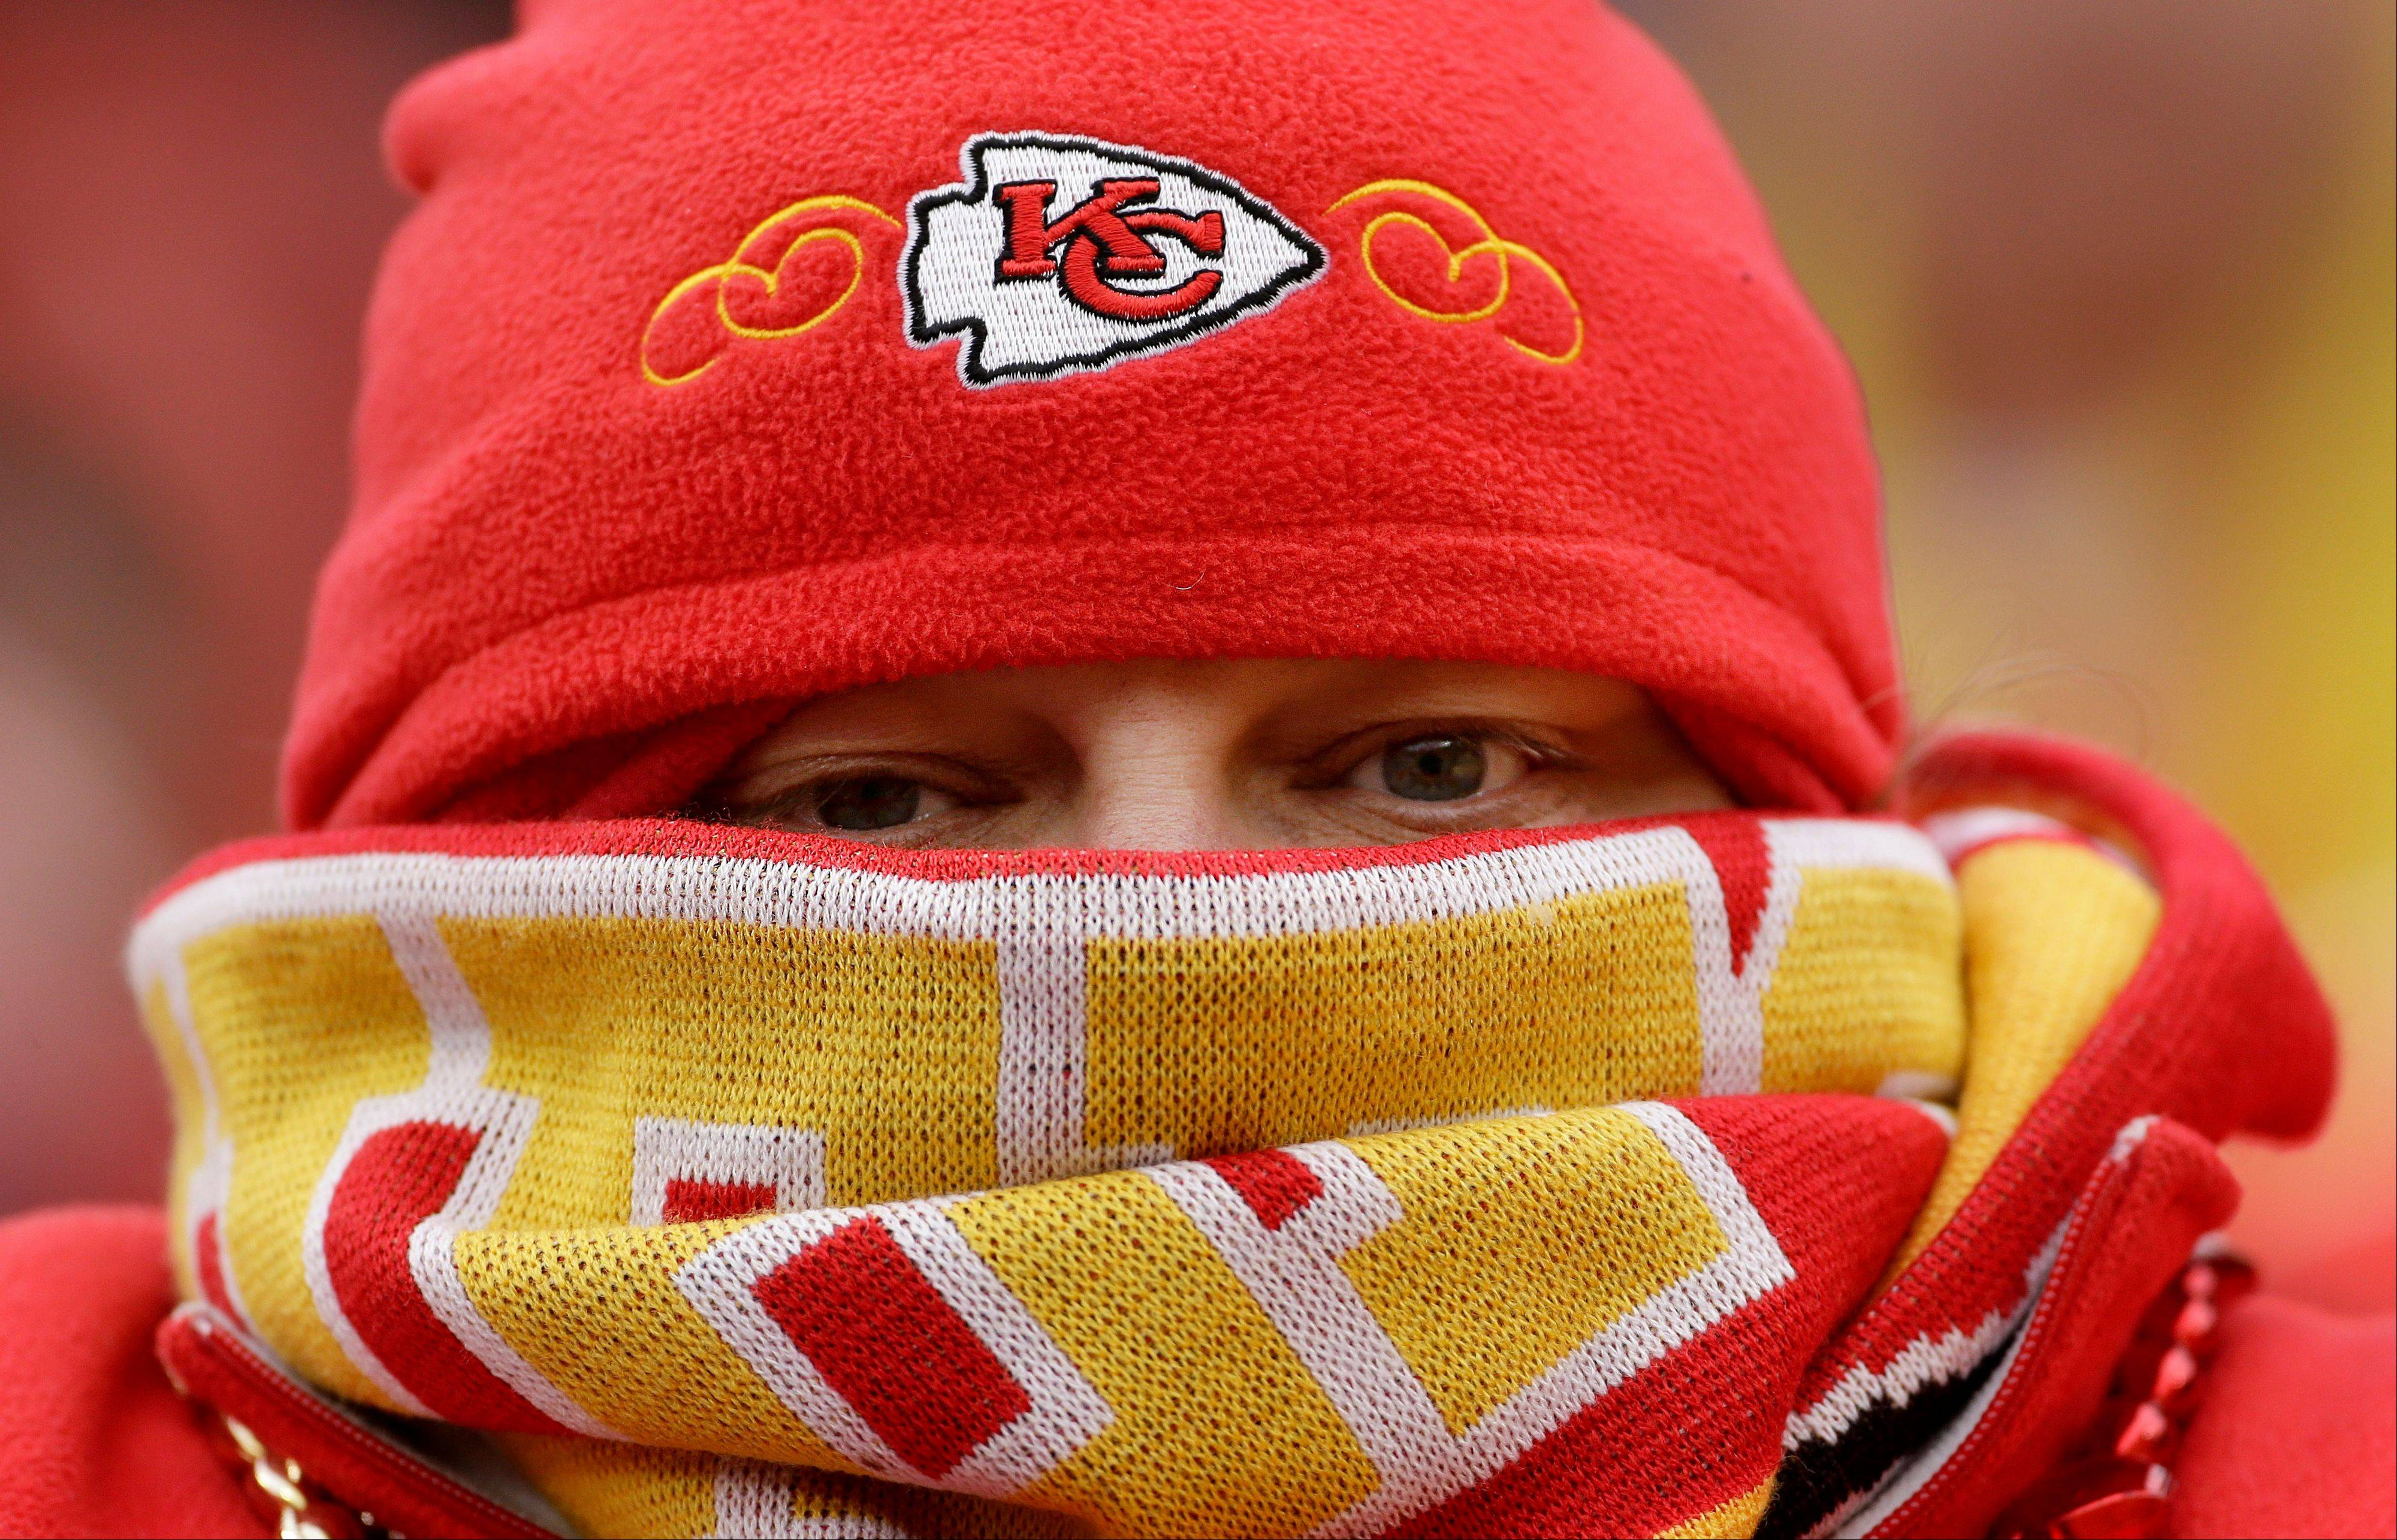 A Kansas City Chiefs fan watches during the final minutes of an NFL football game against the San Diego Chargers on Sunday at Arrowhead Stadium in Kansas City. A cold wave, in many areas accompanied by snow or ice, stretches over the eastern two-thirds of the country and threatens holiday travel.